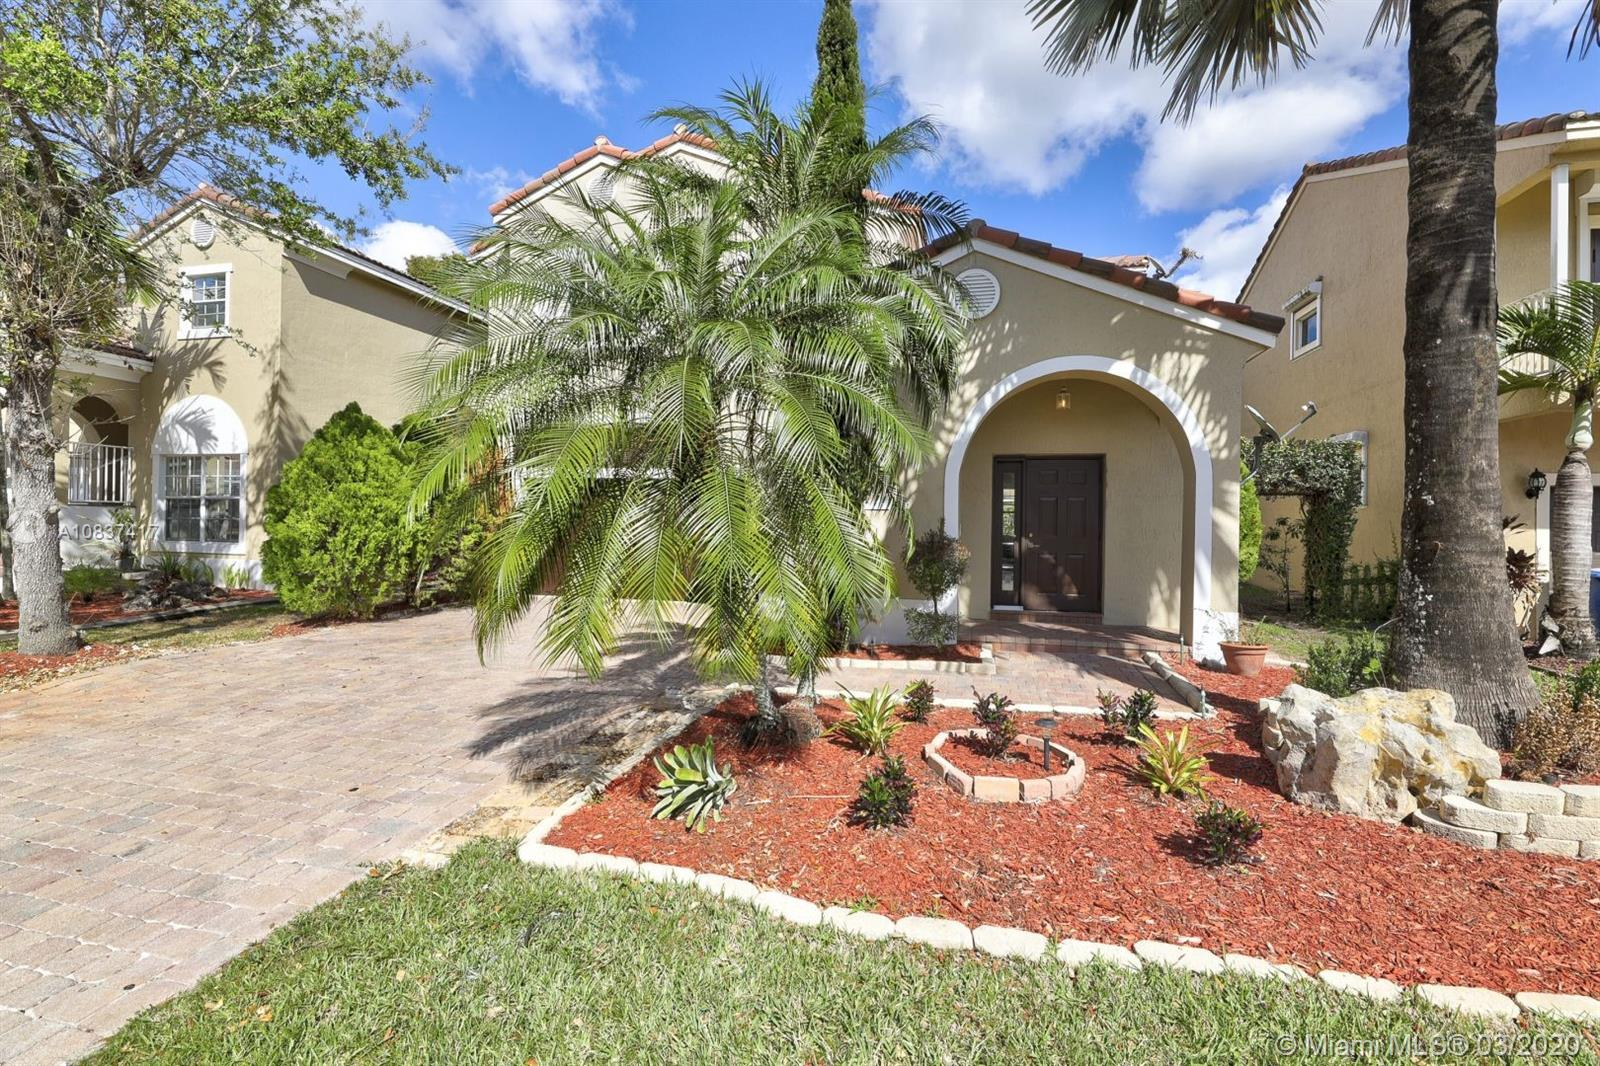 Beautiful Newly remodeled  3 bedroom + 2.5 baths 2 story home in the desirable gated community of Vizcaya off Lakeview Drive- the best street in Coral Springs! Surrounded by luxury high end communities. This spectacular  home features top of the line custom kitchen with Wolf appliances, wood floors,freshly remodeled bathrooms and amazing open space concept. MUST SEE! Won't Last!